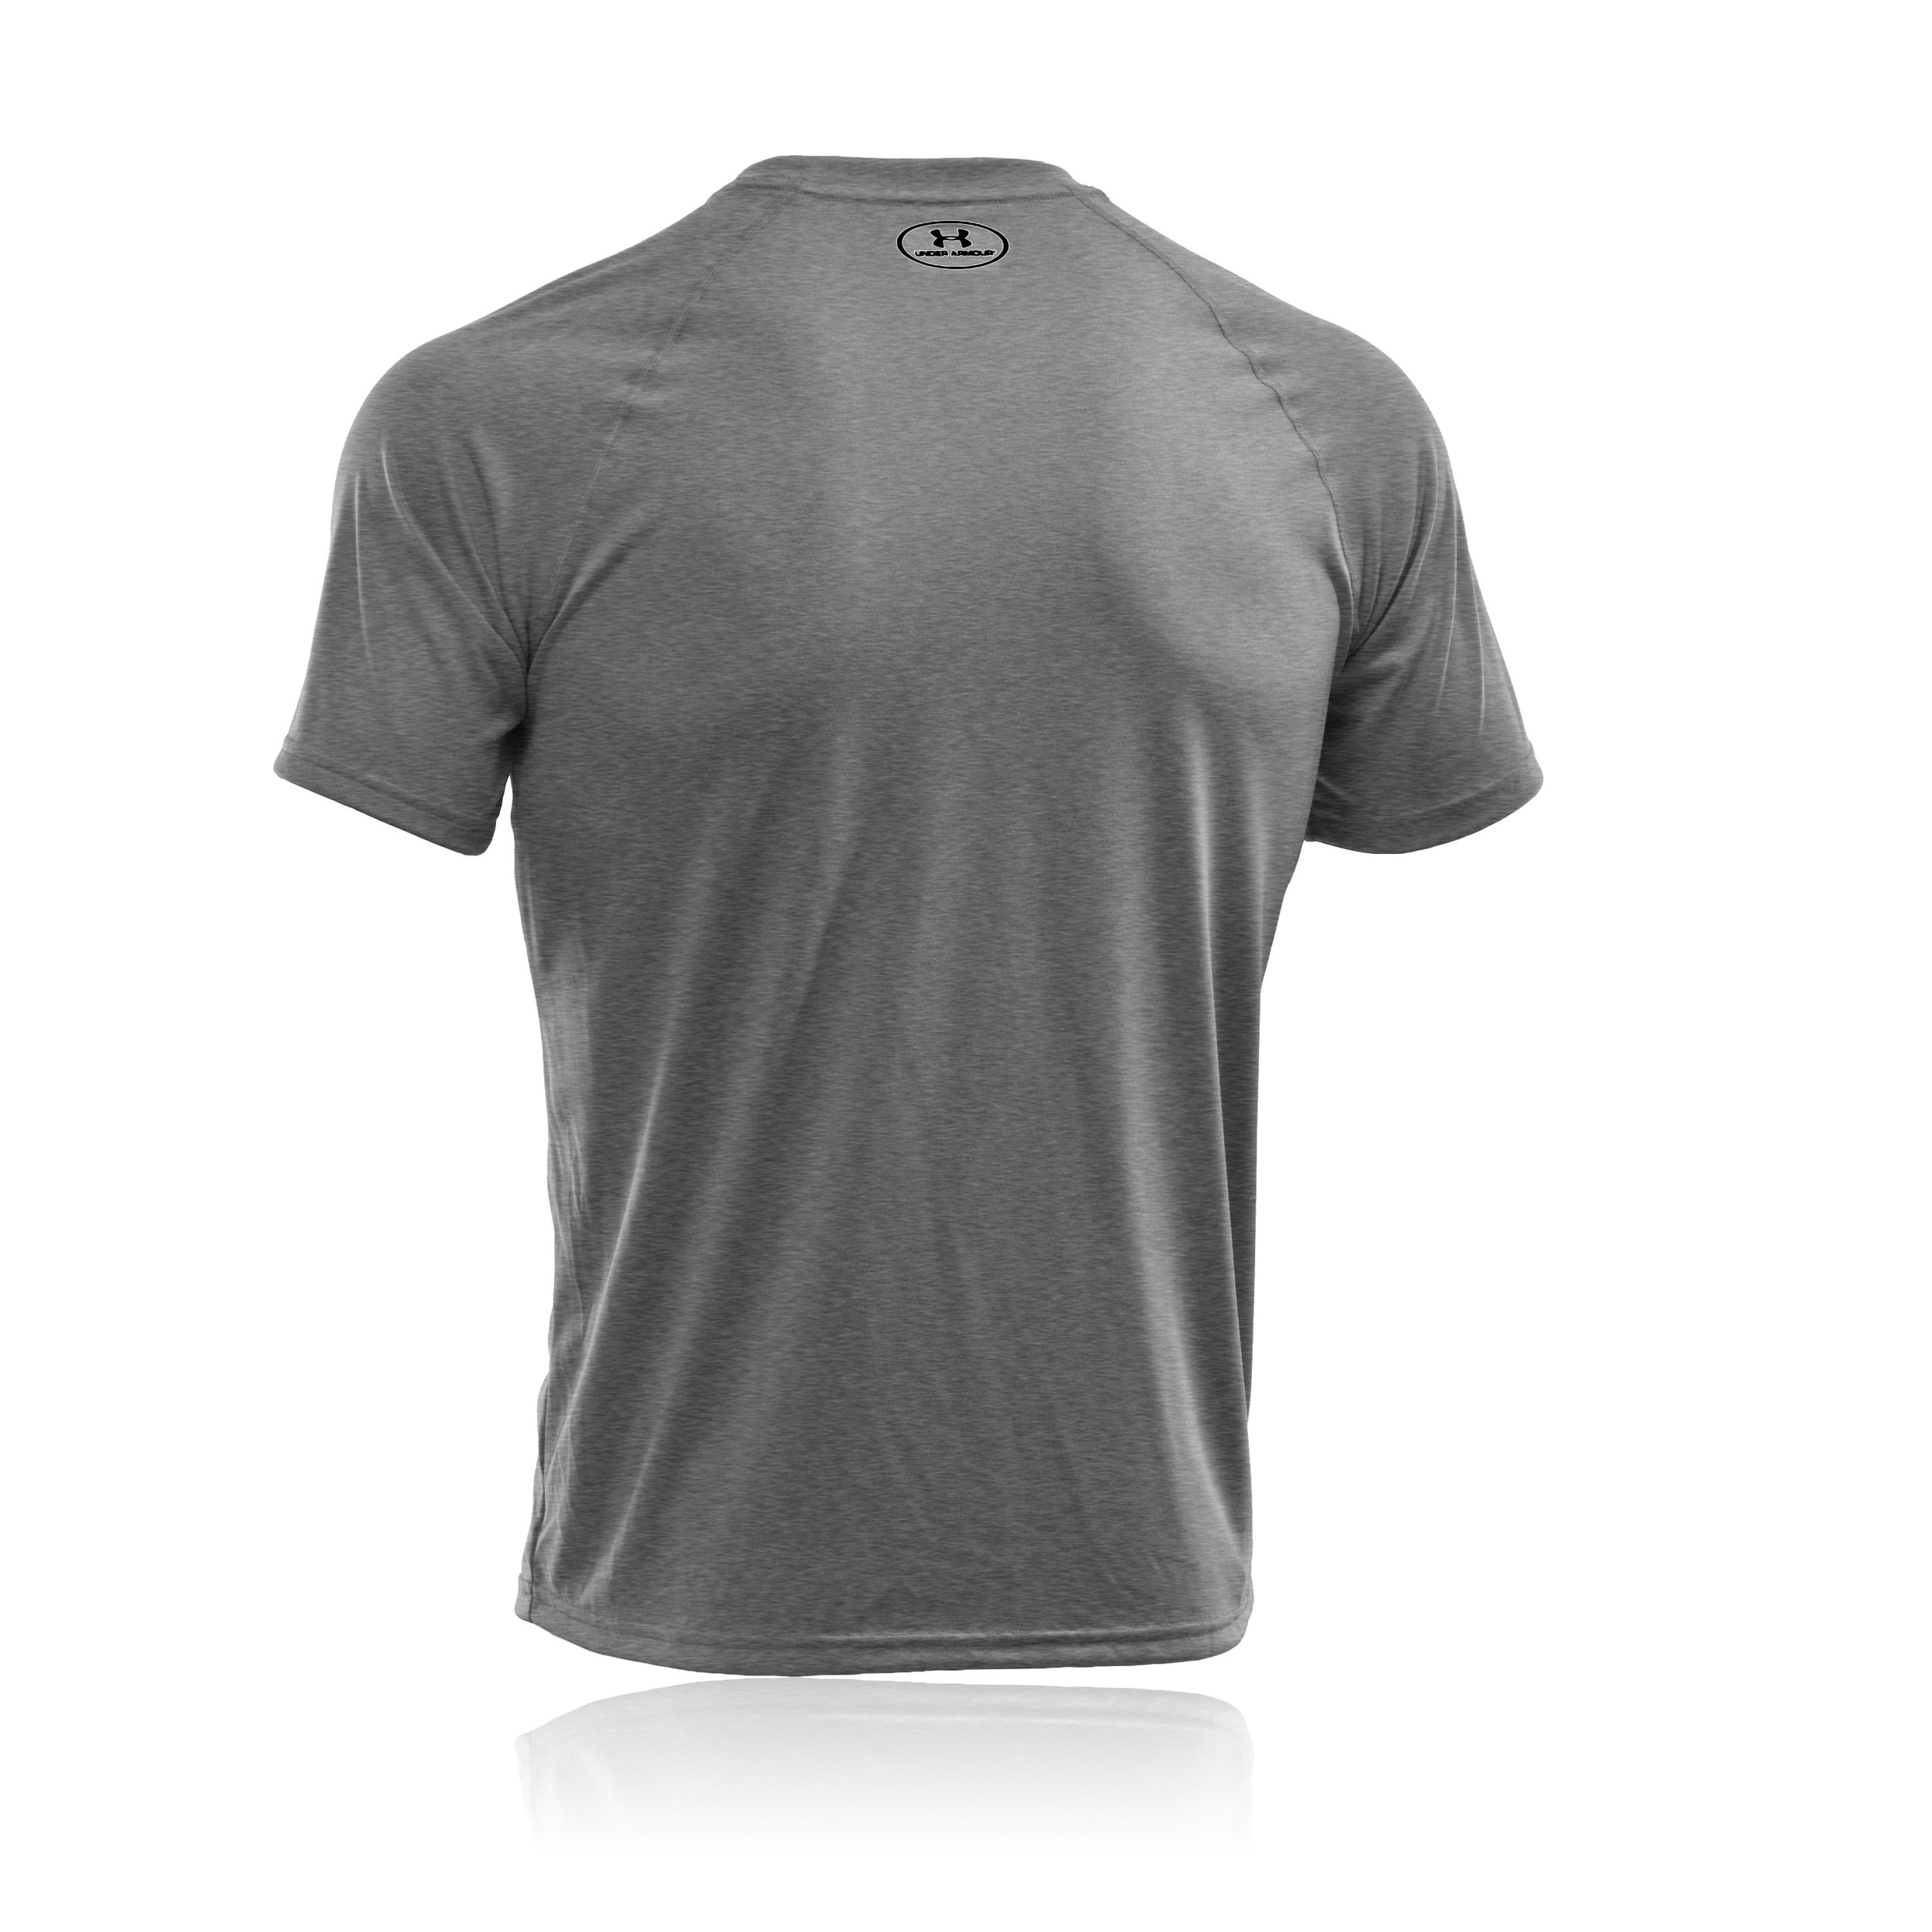 Under Armour Tech Mens Grey Breathable Short Sleeve Sports